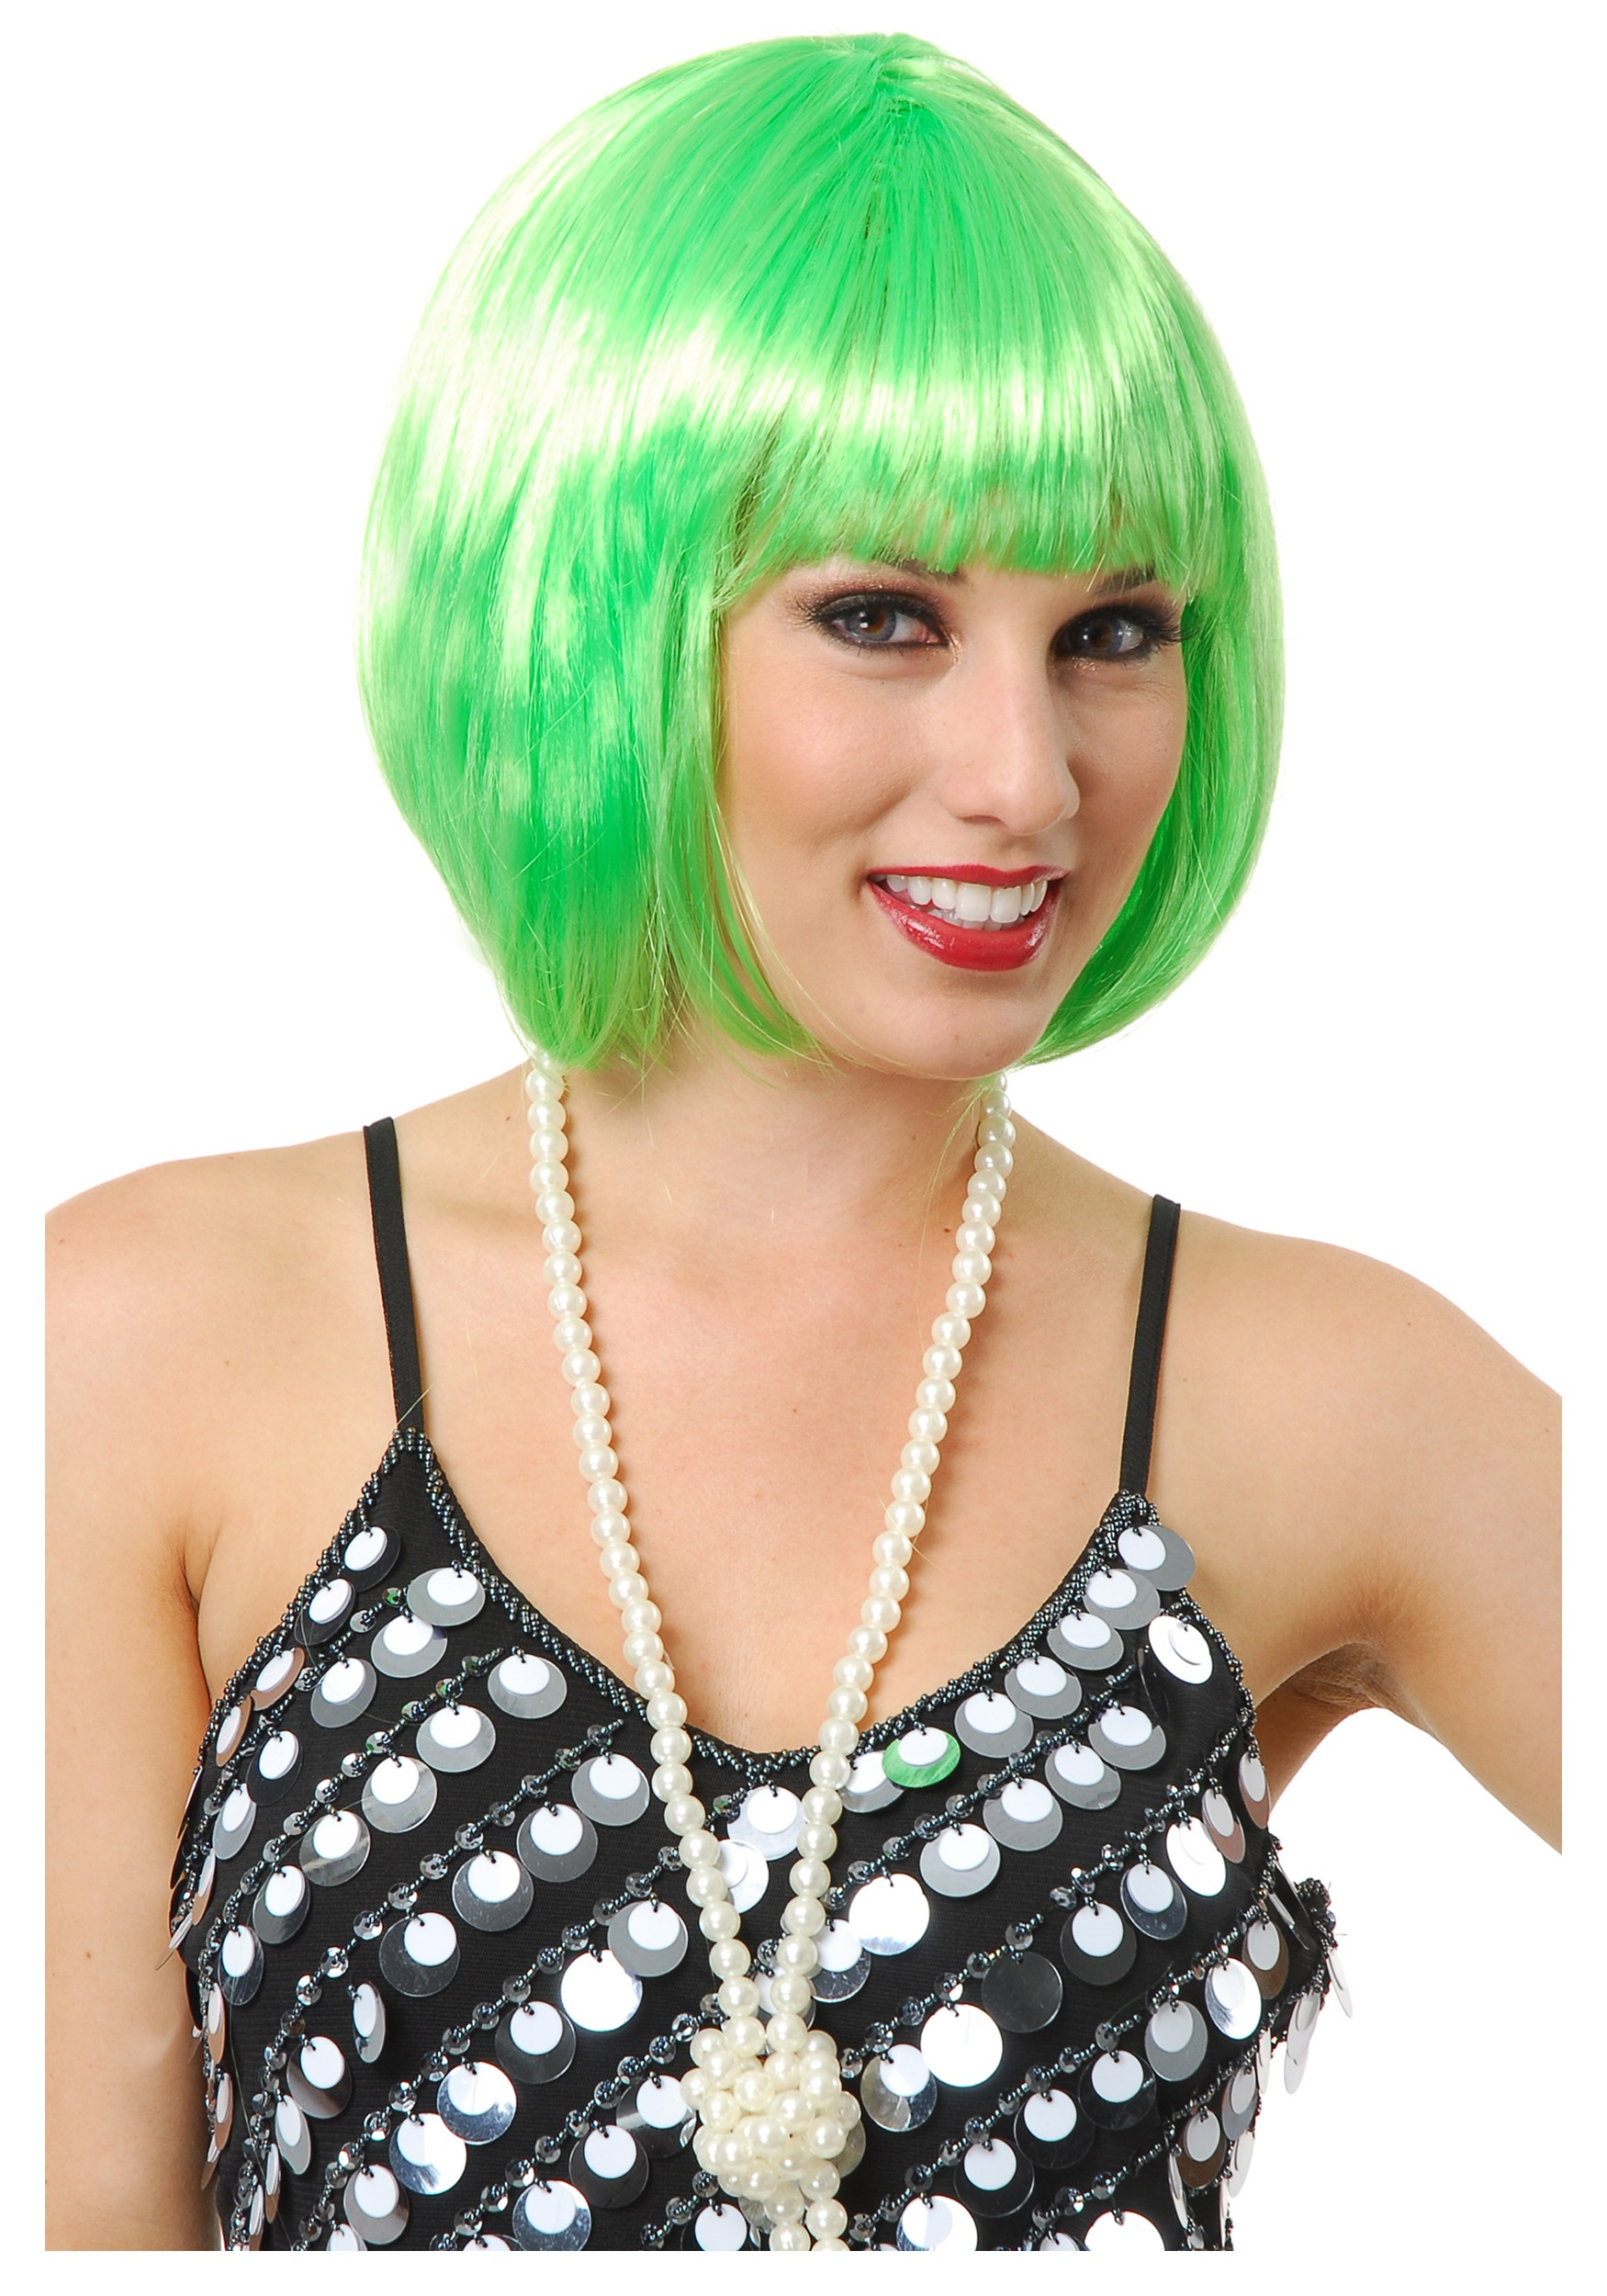 Halloween Costume Ideas For Girls With Short Hair.Short Bob Lime Green Wig